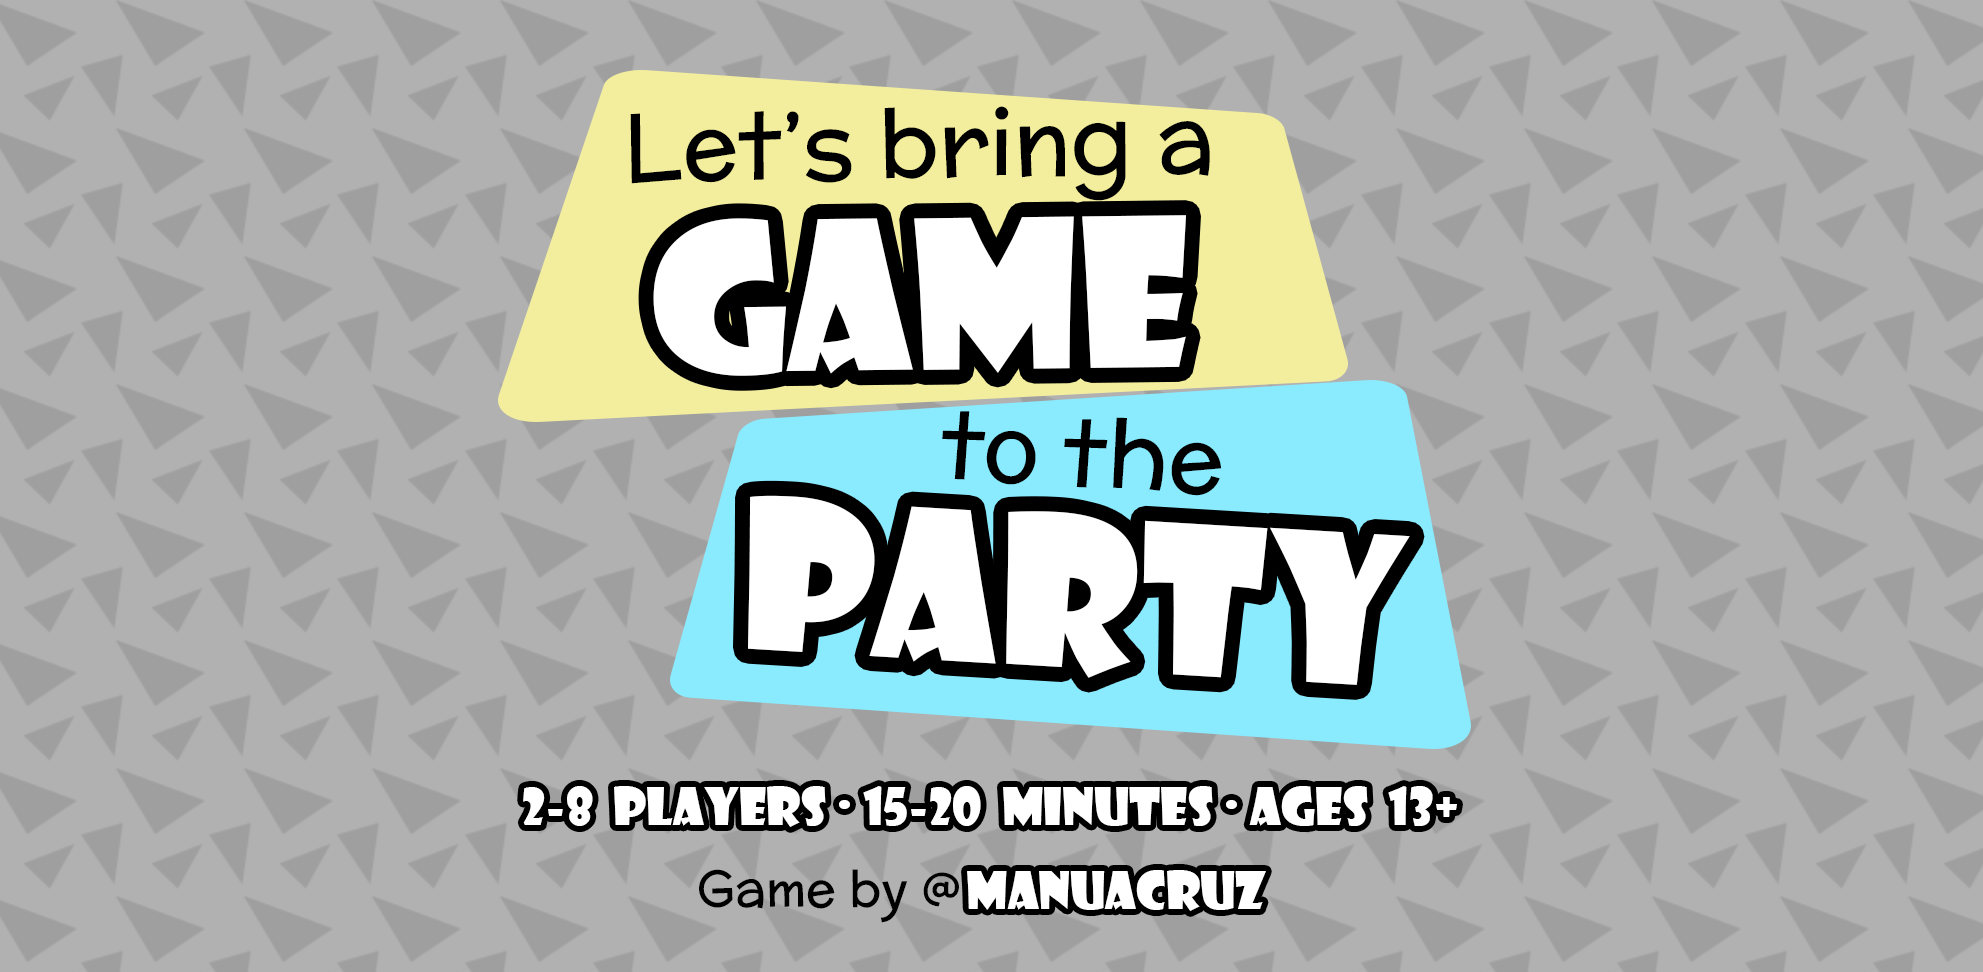 Let's bring a Game to the Party